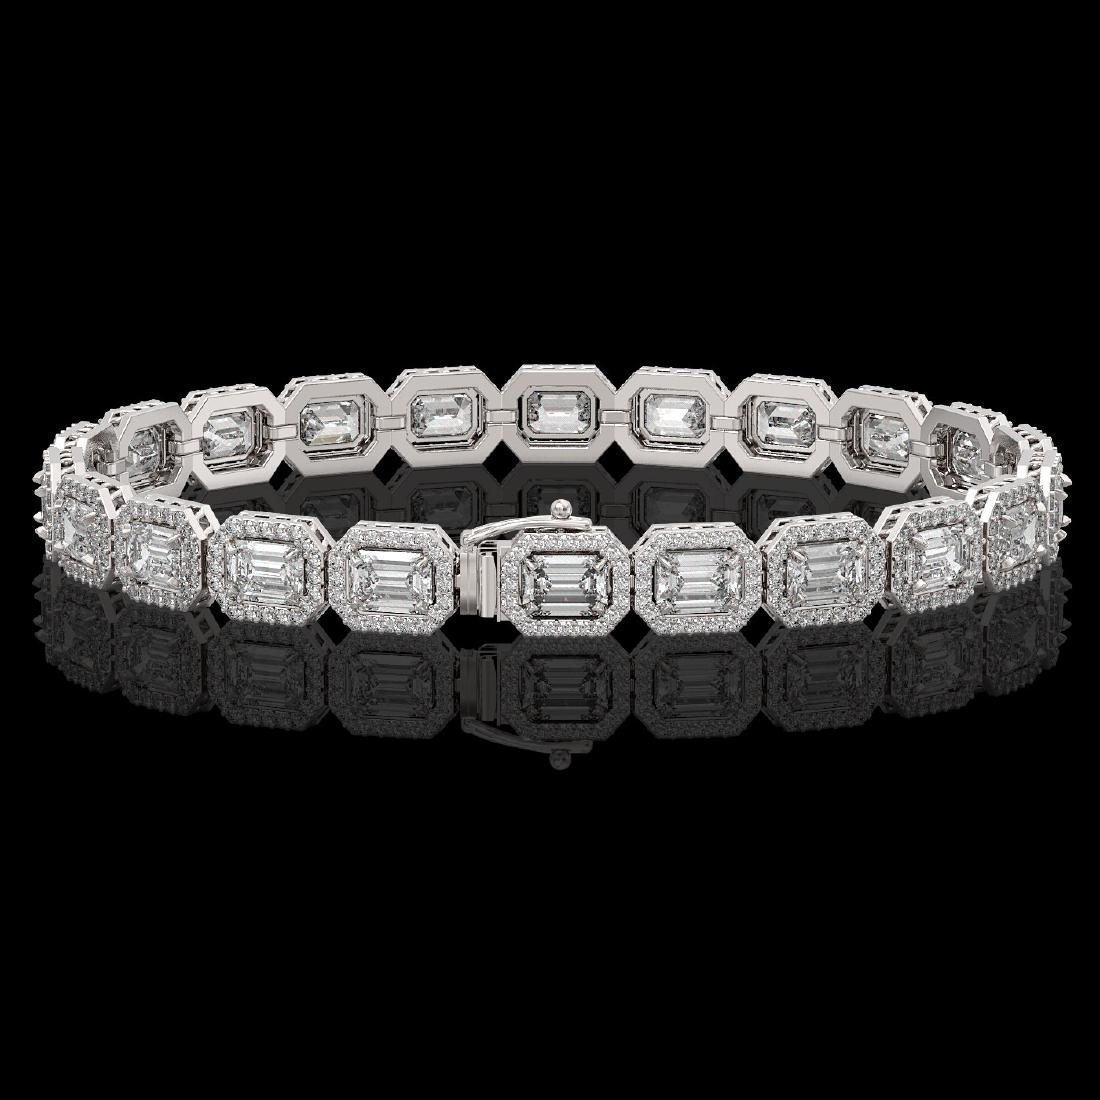 14.57 CTW Emerald Cut Diamond Designer Bracelet 18K - 2